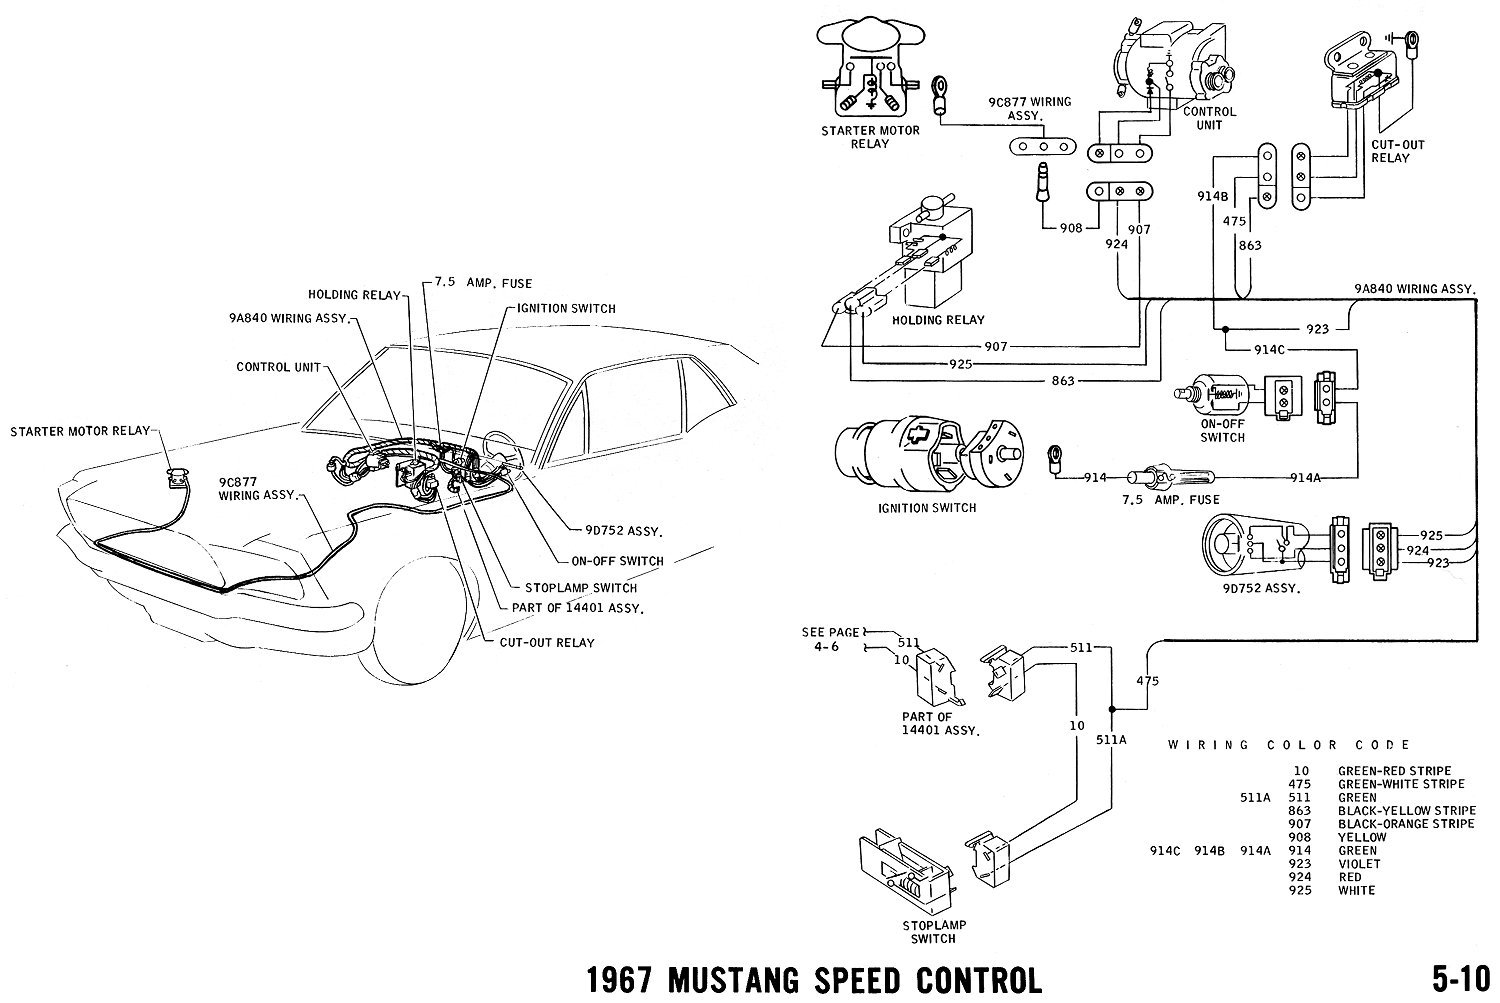 67speed 1967 mustang wiring and vacuum diagrams average joe restoration 1967 mustang ignition wiring diagram at soozxer.org